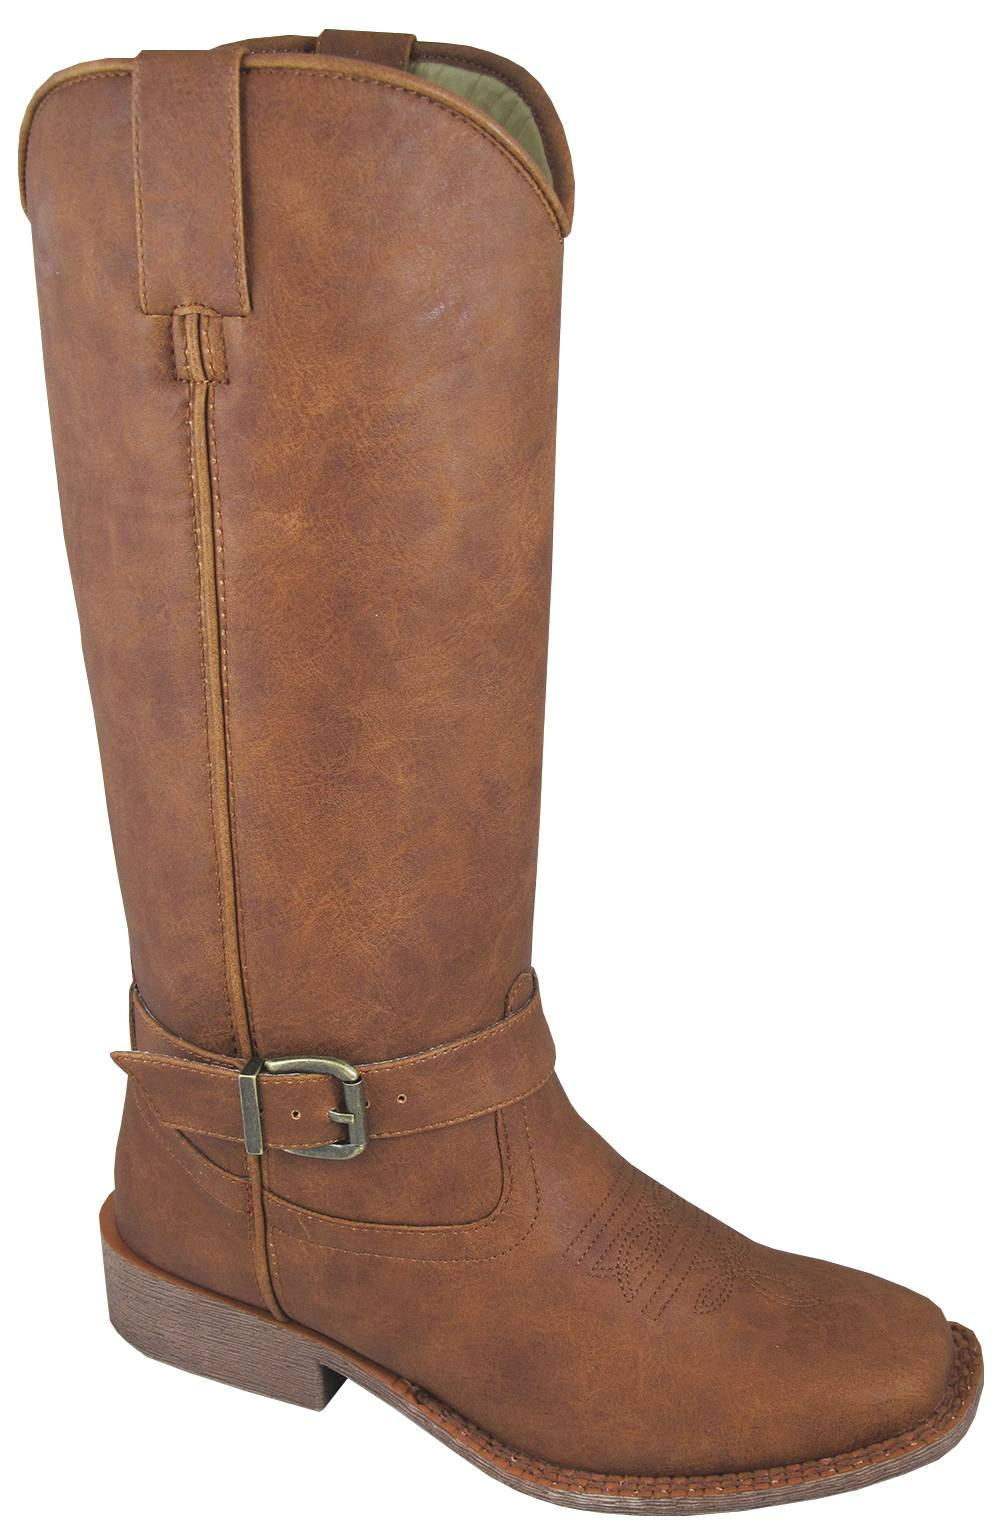 Smoky Mountain Womens Buttercup Tall Square Toe Boots - Tan